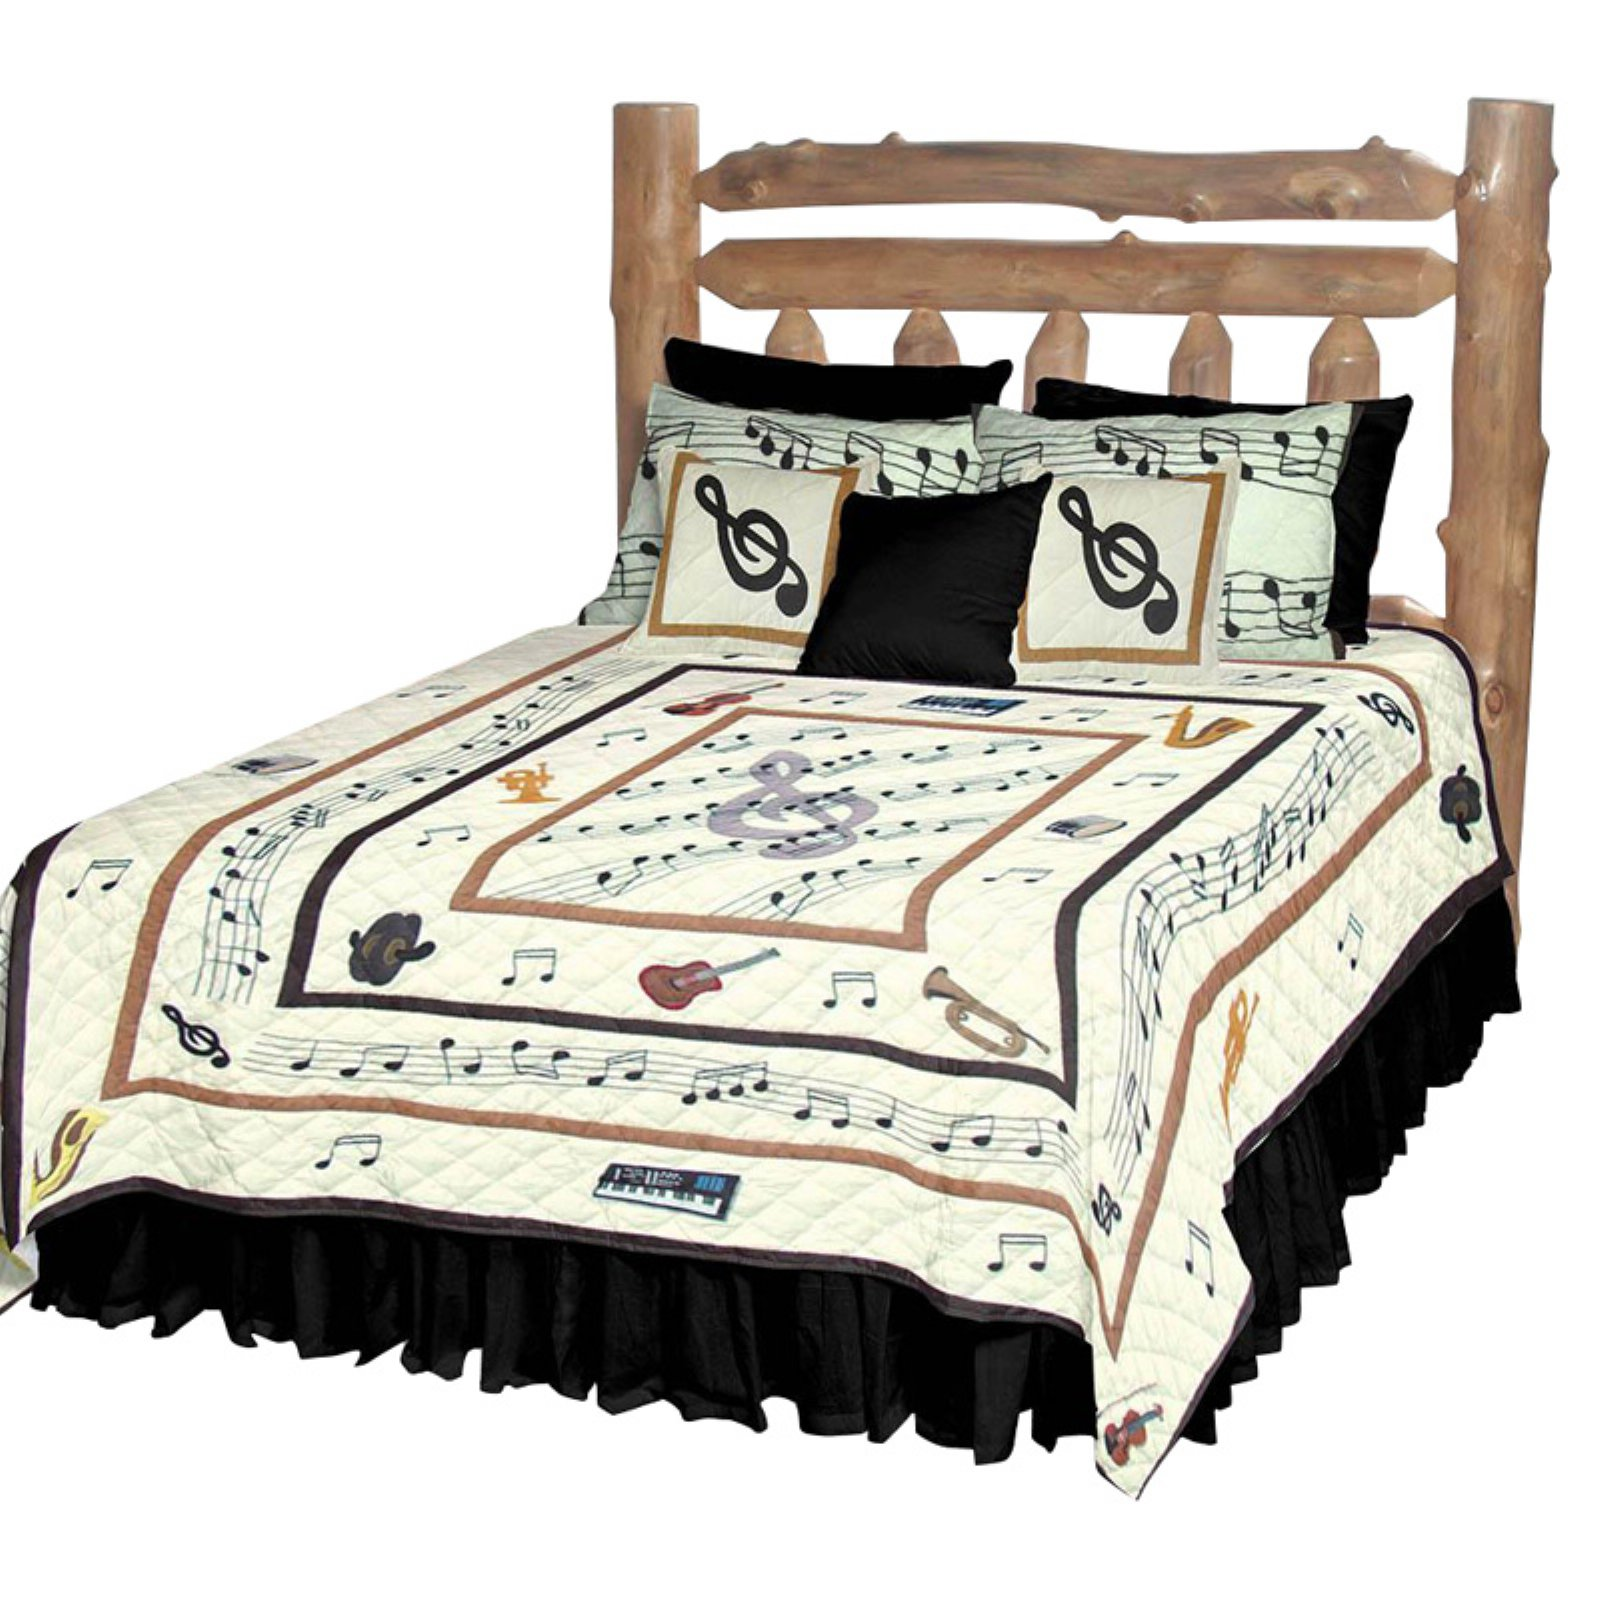 Patch Magic QKMUSC Music, Quilt King 105 x 95 inch